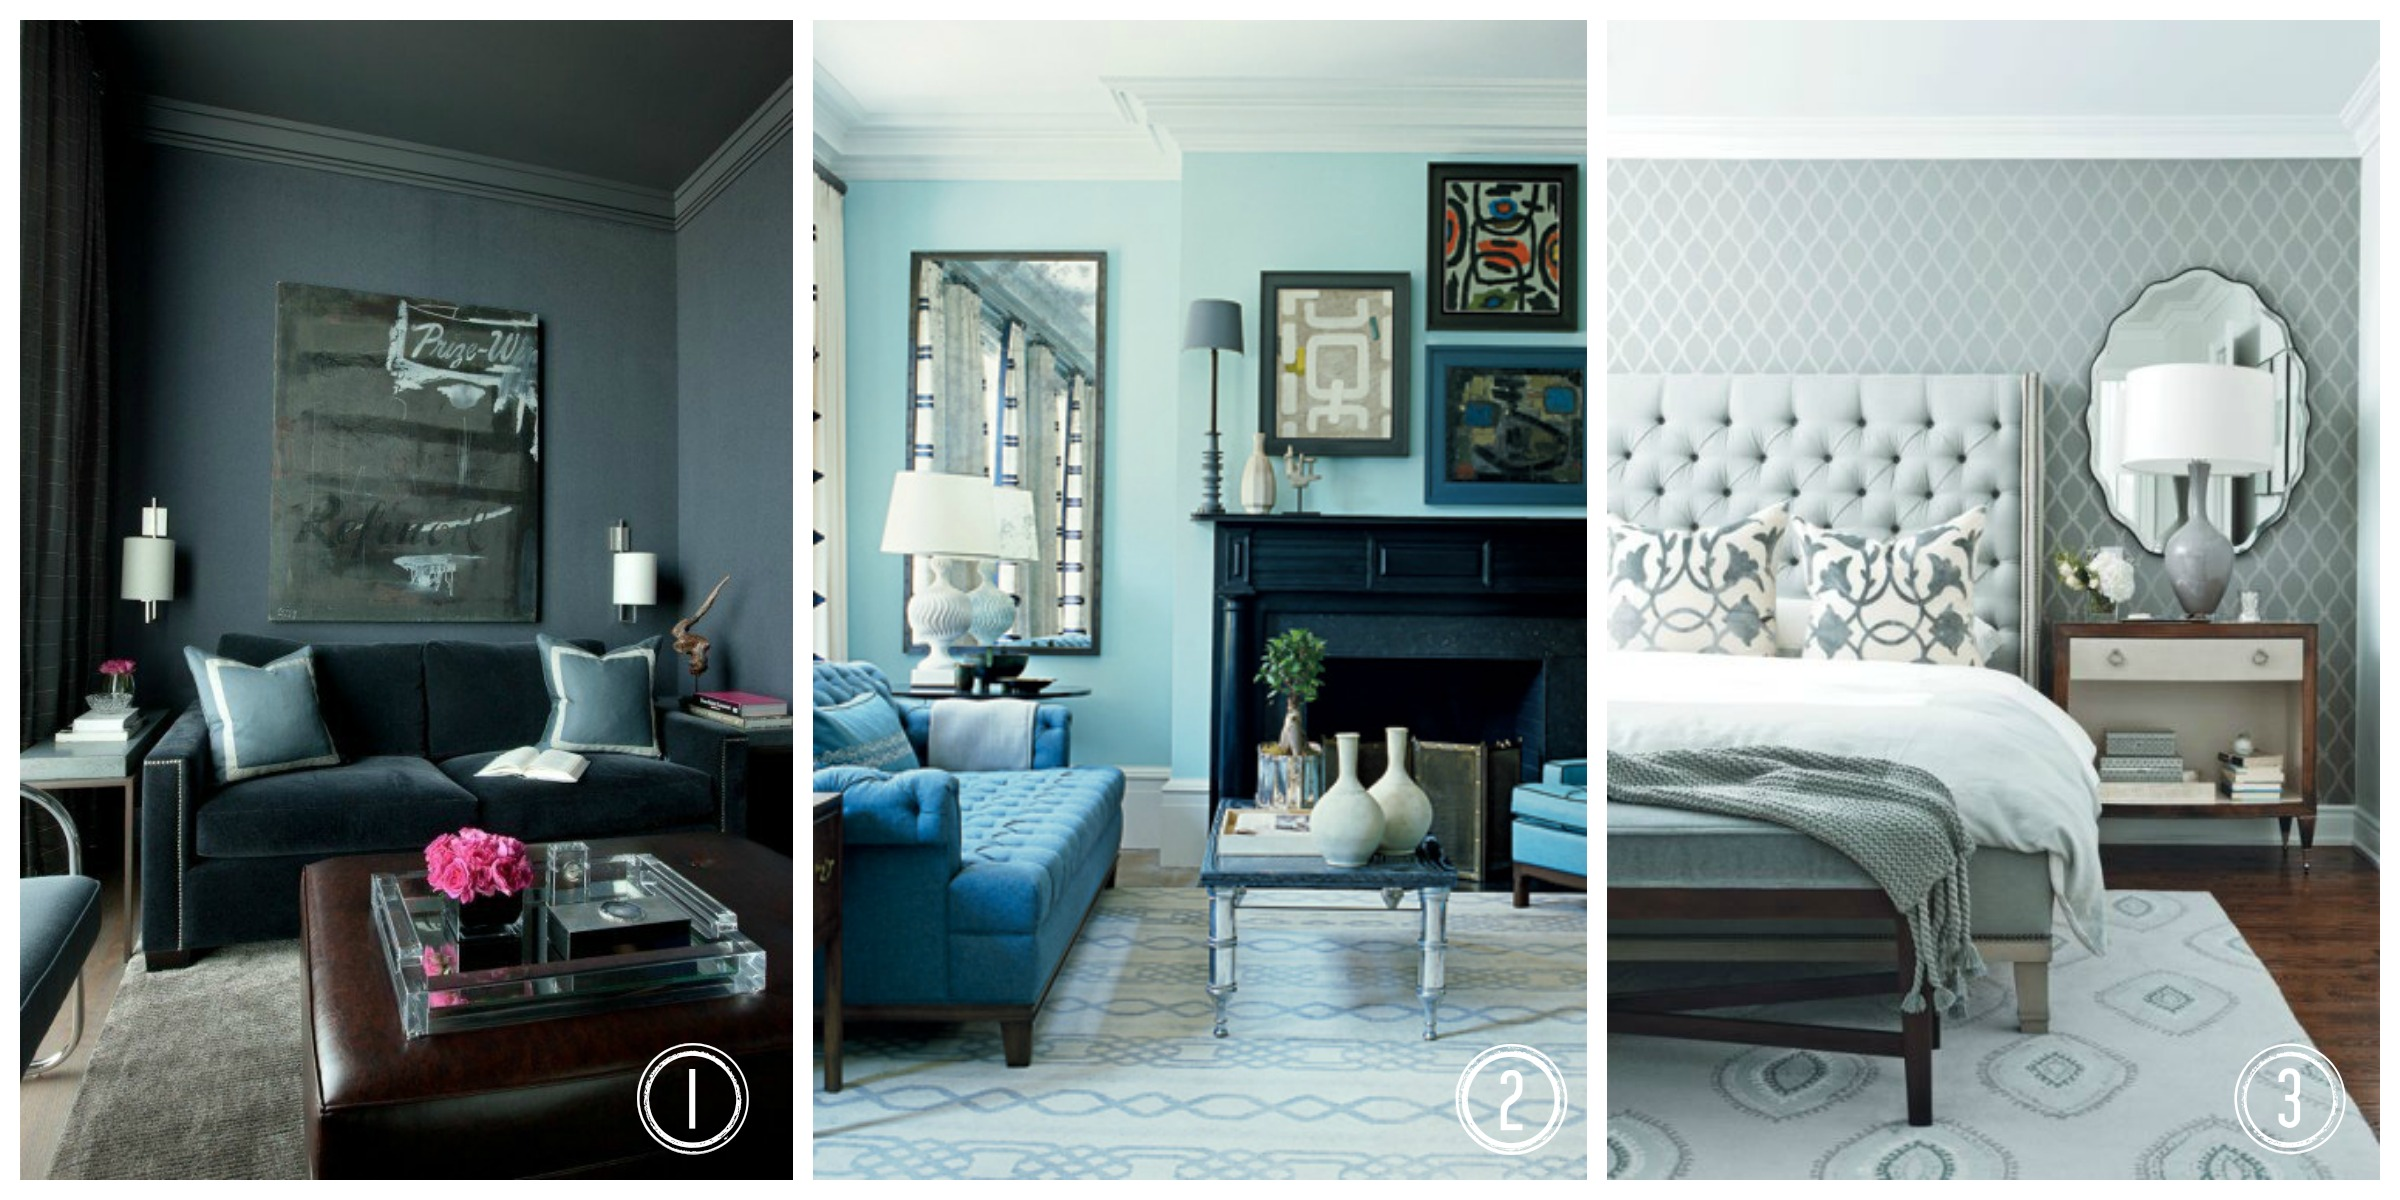 Best 25 living room colors ideas on pinterest living What colors go good together for a room